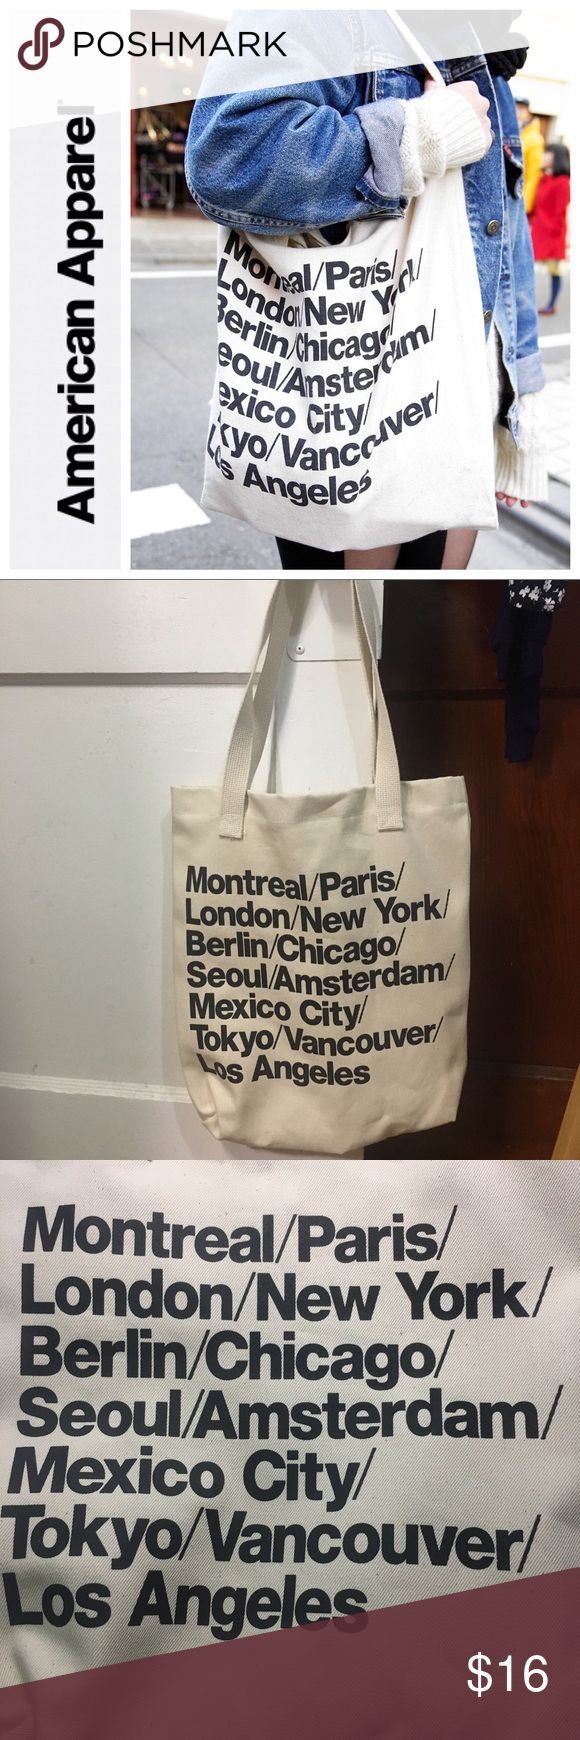 🆕CLASSIC AMERICAN APPAREL TOTE🆕 NEW WITH TAG‼️ The classic & infamous American Apparel tote bags are no longer being made nor sold. These bags are very spacious, versatile, and fashionable! Commonly found on Tumblr, grab yours today while you can! THIS BAG HAS 2 STRAPS! PRICE IS FIRM. American Apparel Bags Totes